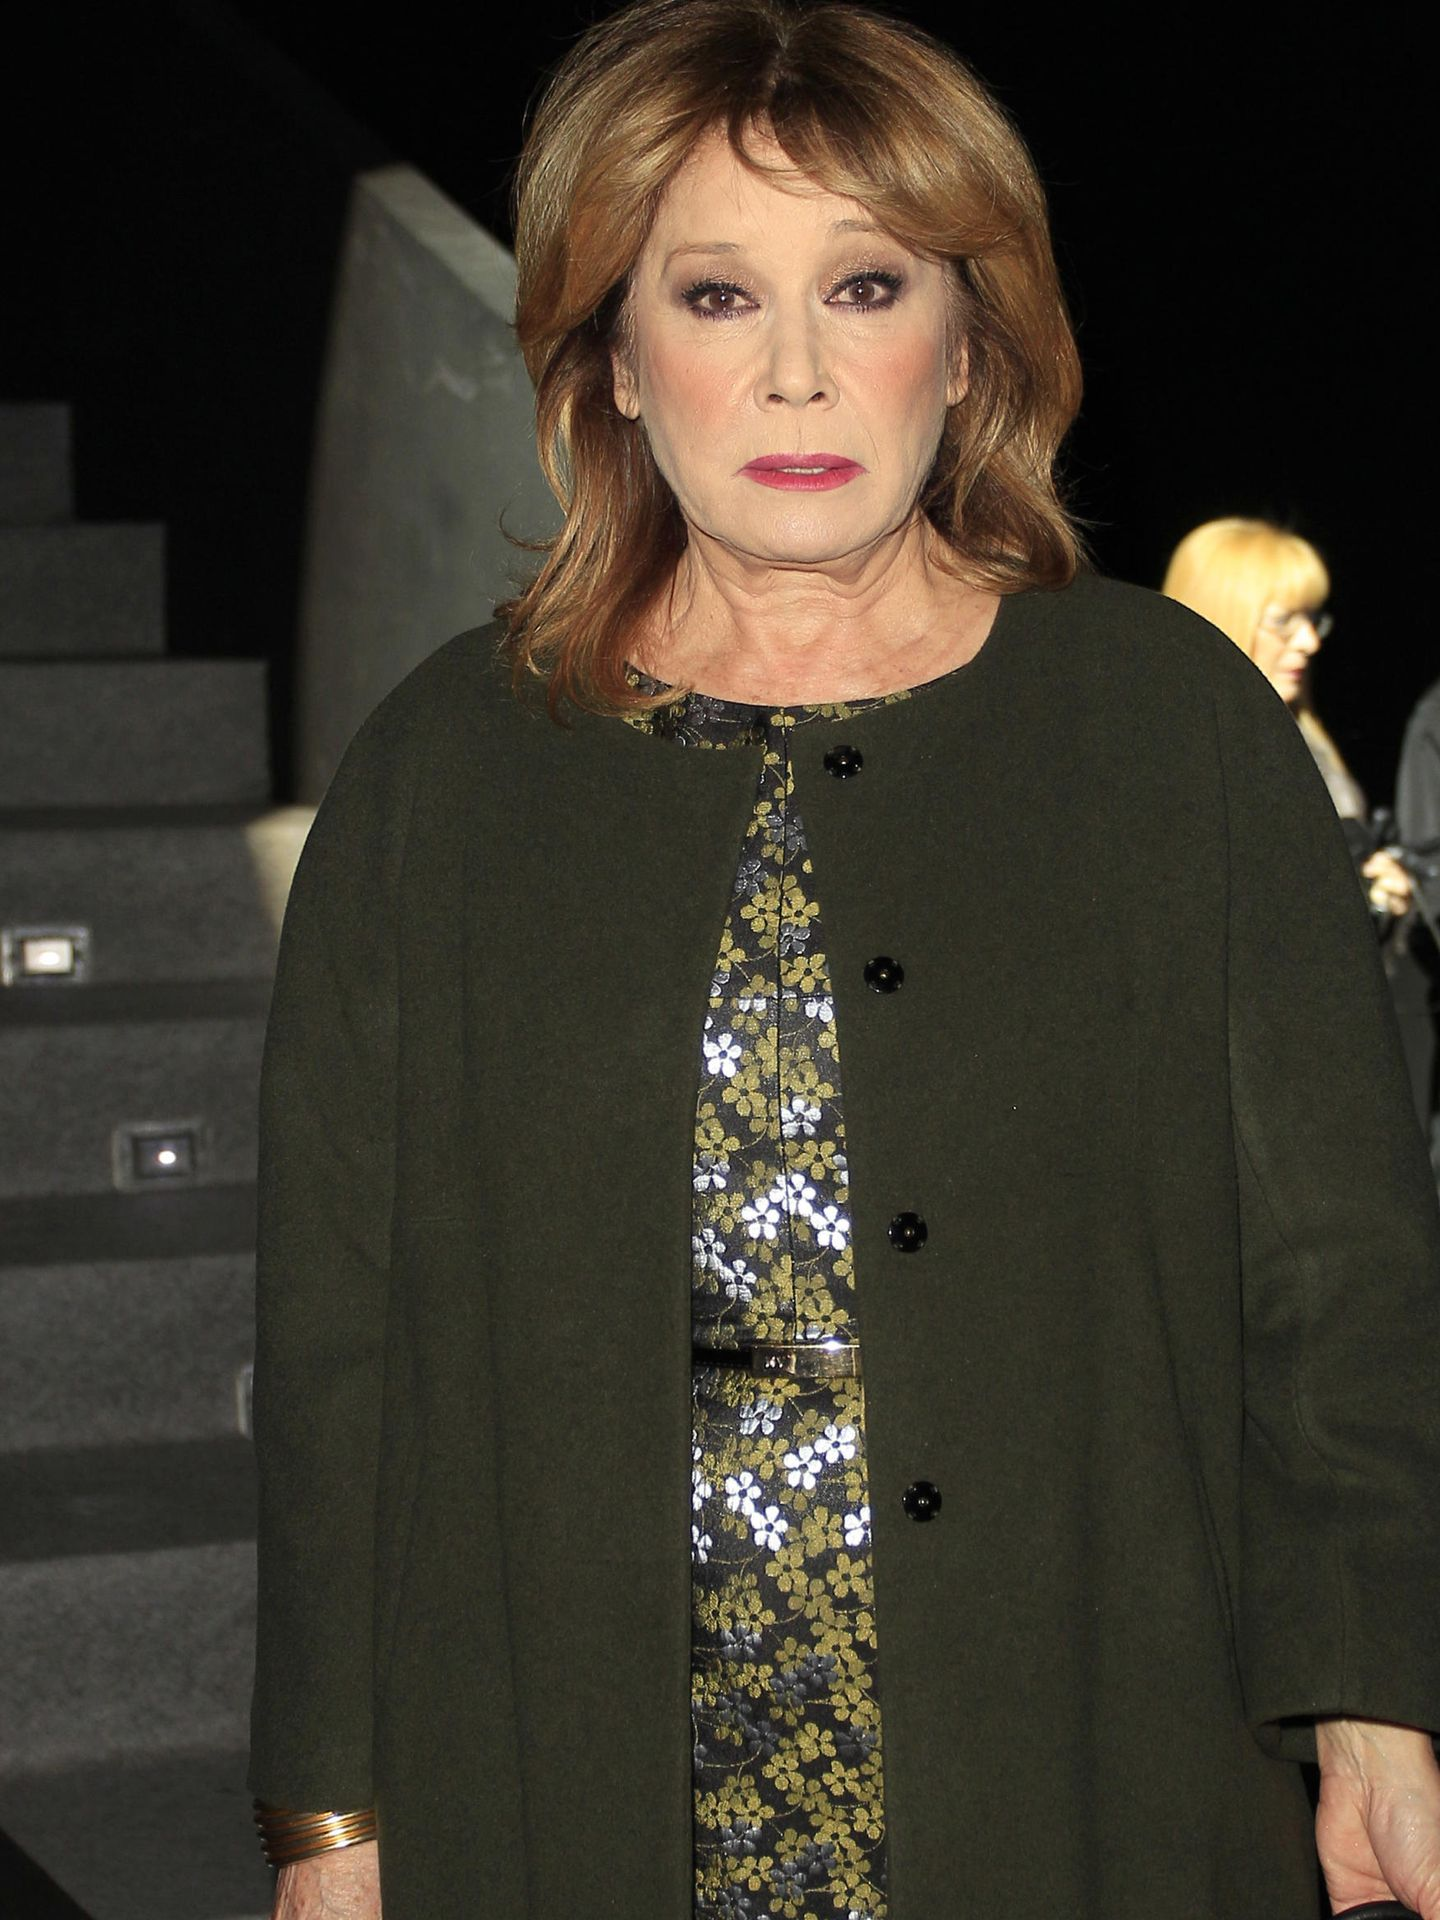 Mila Ximenez at the front row of RobertoVerino collection runway during Pasarela Cibeles - Mercedes-Benz Fashion Week Madrid 2015, in Madrid, on Saturday 7th February 2015